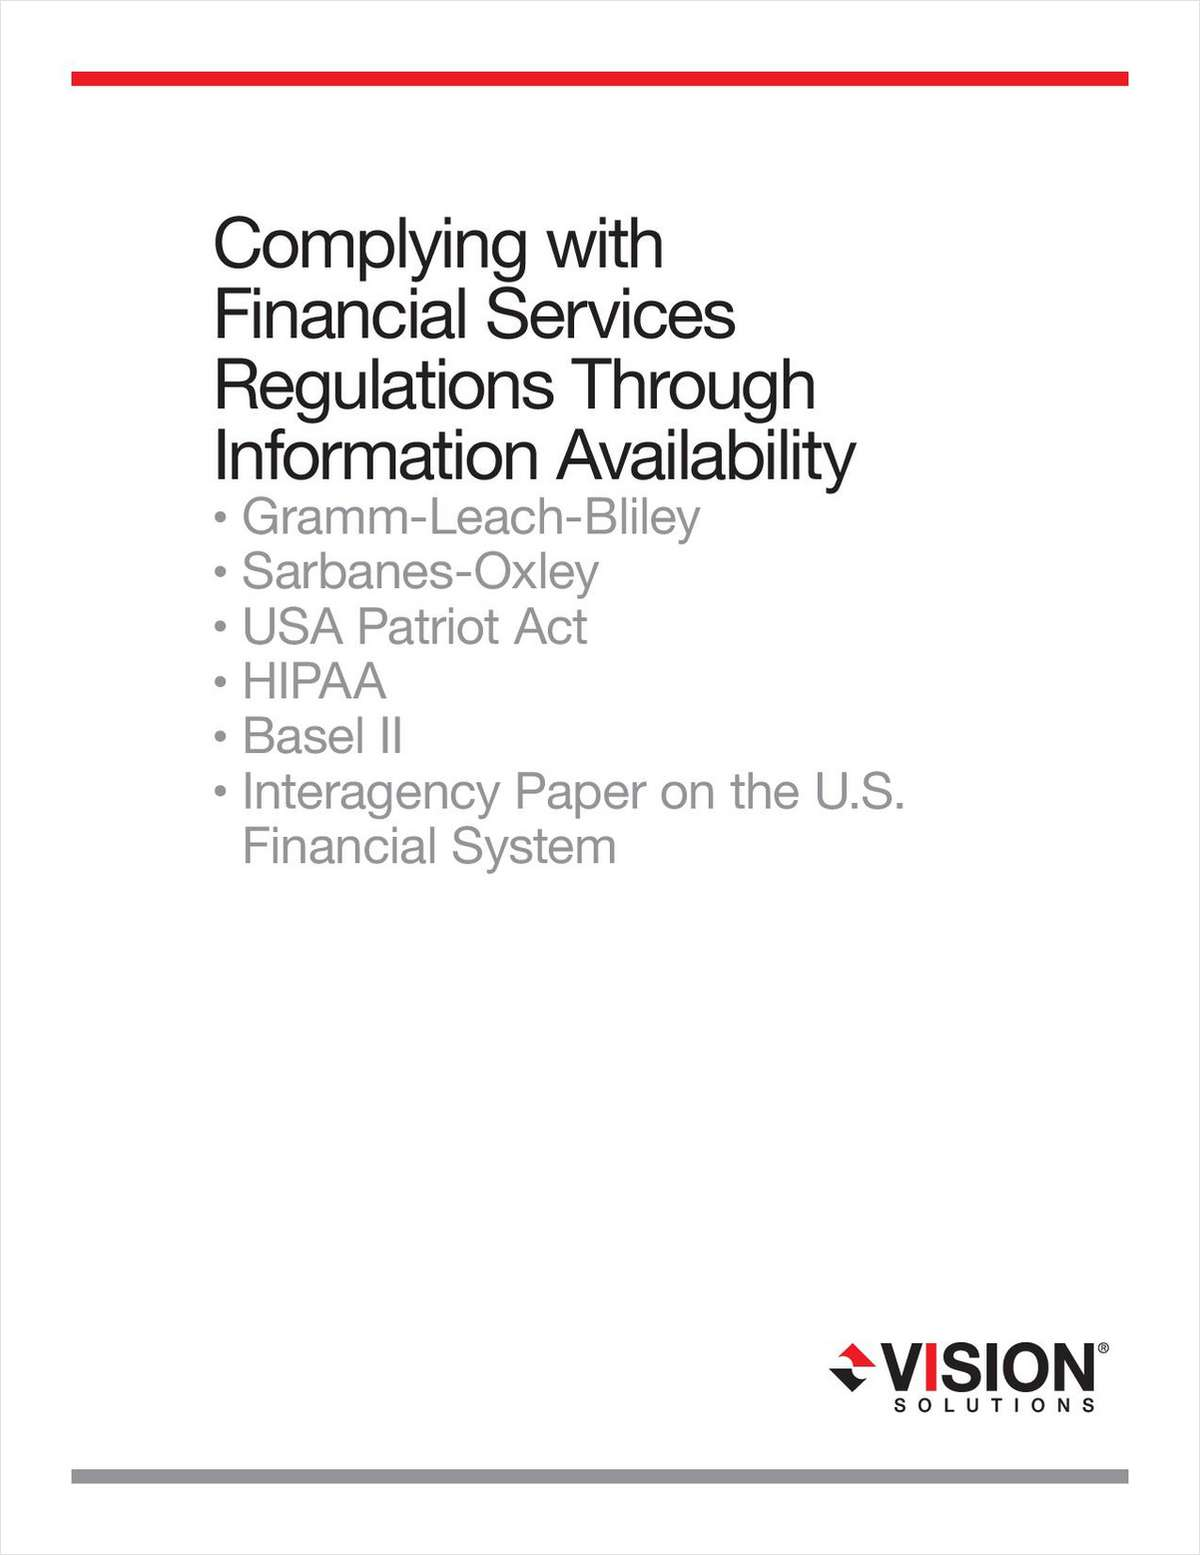 Complying with Financial Services Regulations Through Information Availability